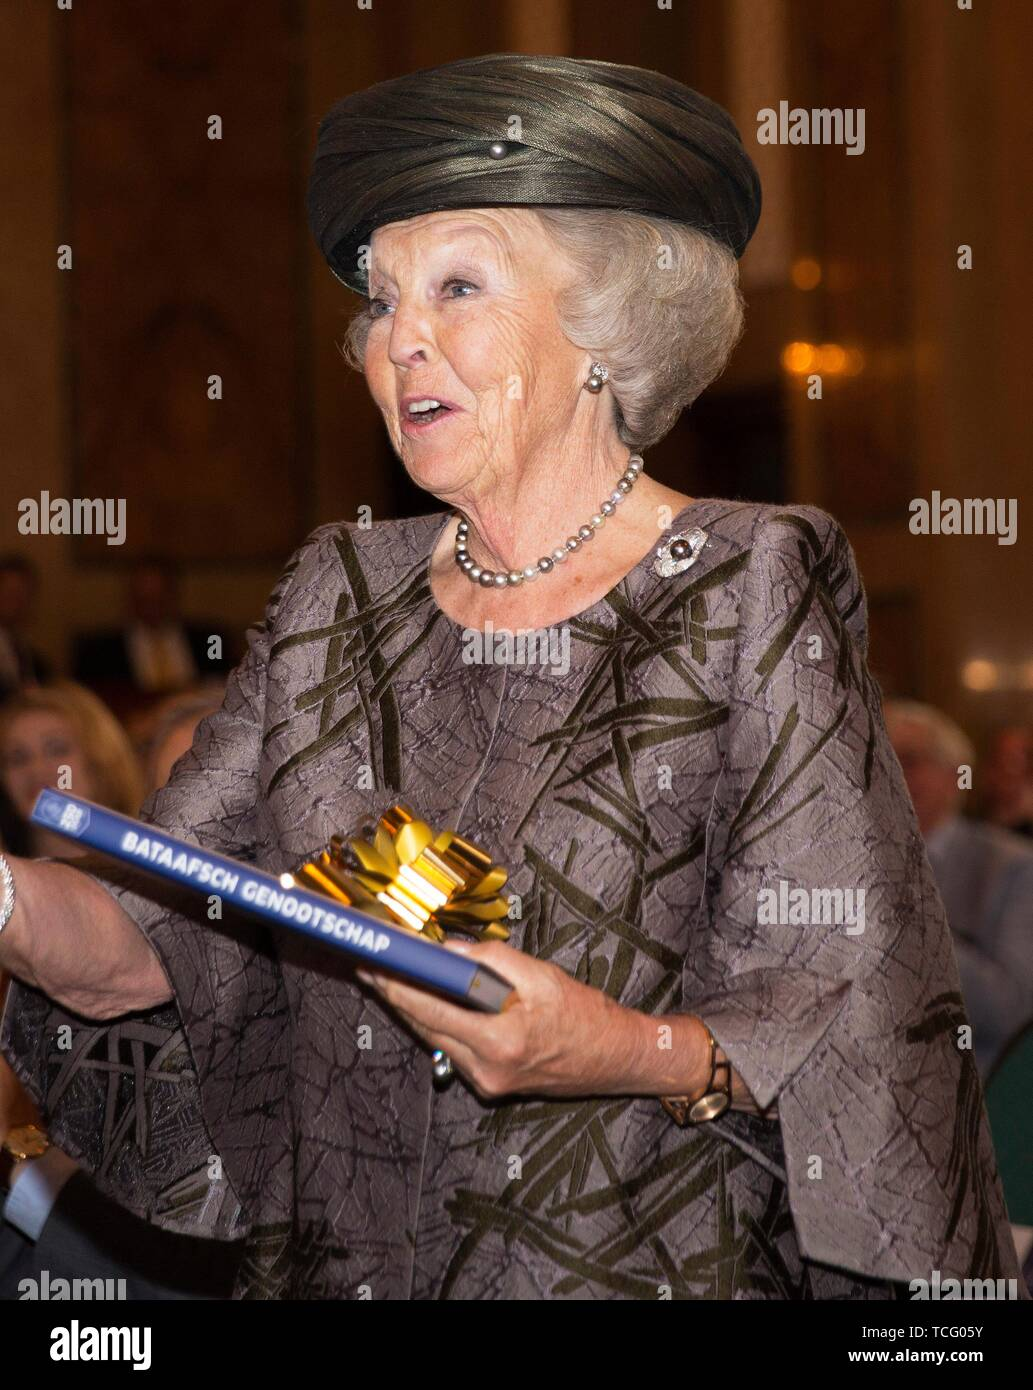 Rotterdam, Netherlands. 07th June, 2019. Princess Beatrix of The Netherlands at the city hall in Rotterdam, on June 07, 2019, to attend the the celebration of the 250th anniversary of the Batavian Society of Experimental Philosophy Credit: Albert Ph van der Werf/Netherlands OUT/Point De Vue OUT |/dpa/Alamy Live News - Stock Image